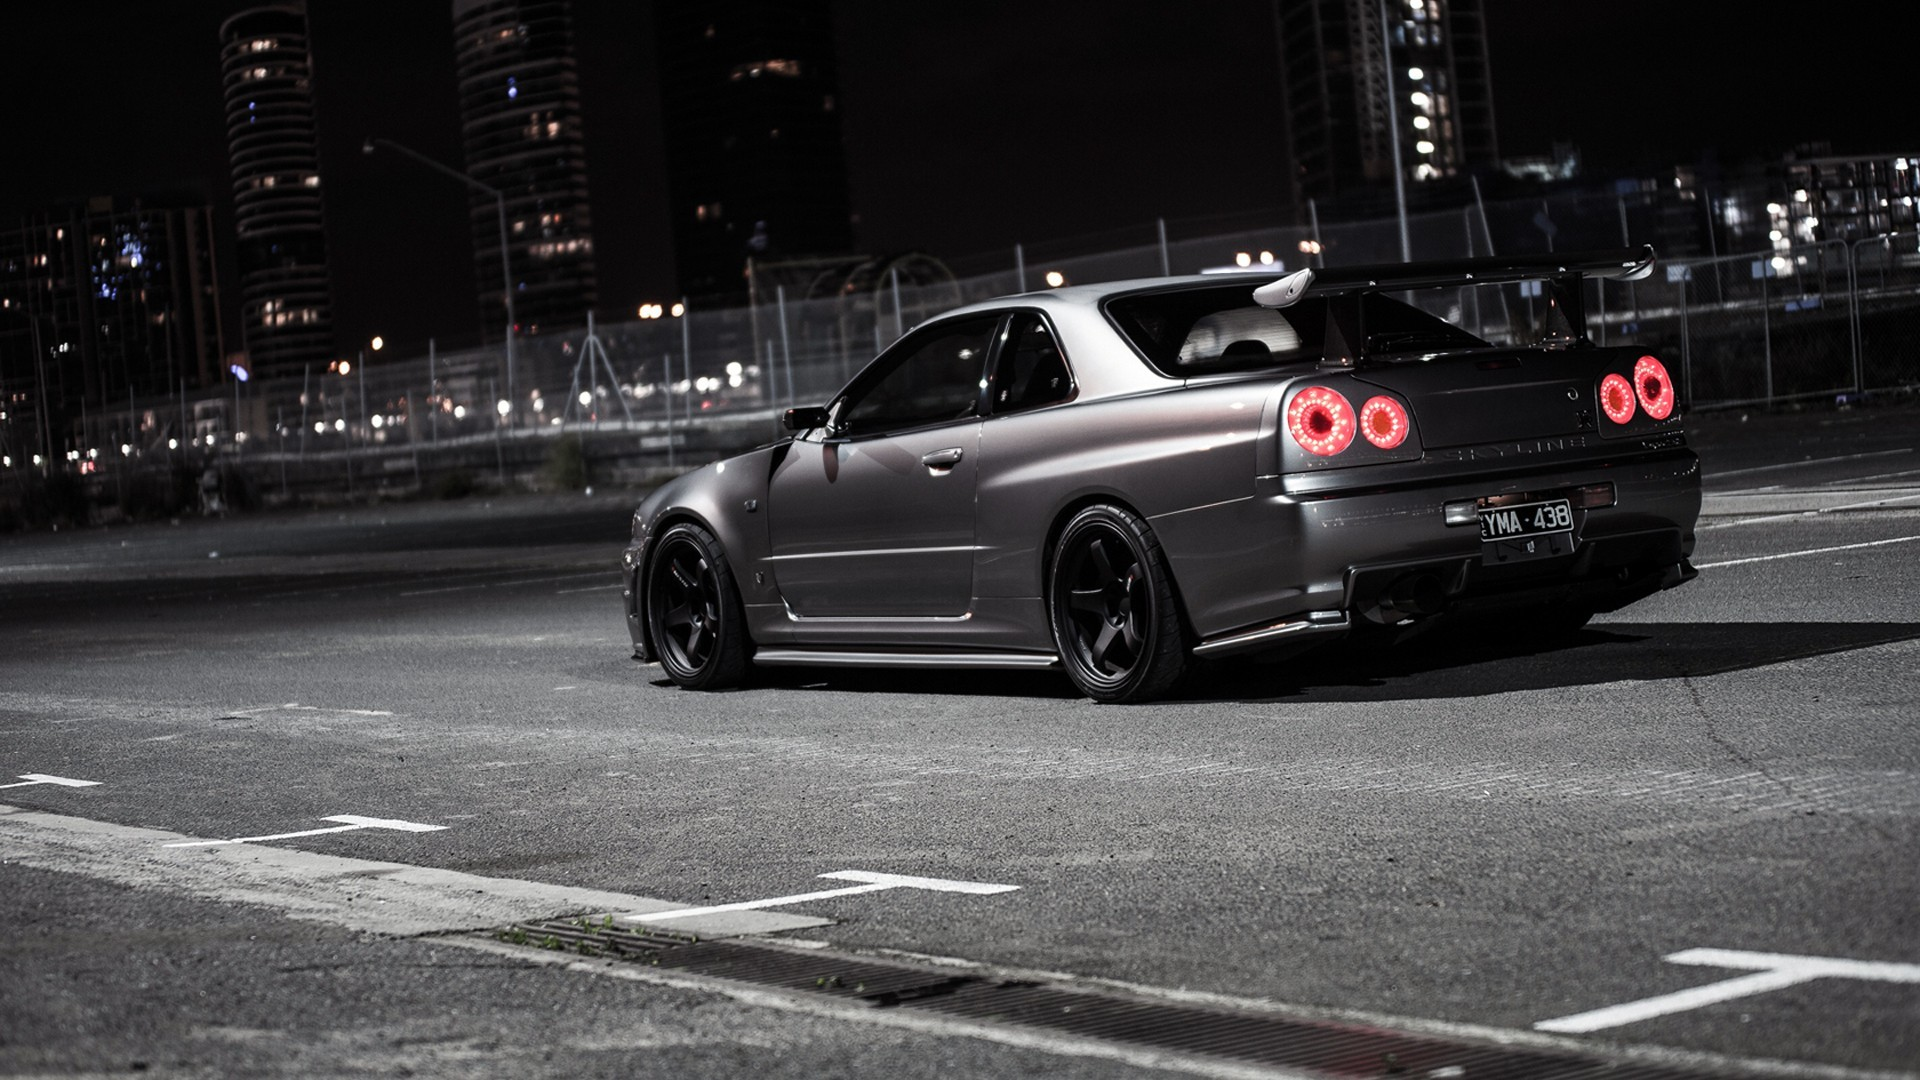 Tag nissan skyline gtr r wallpaper iphone Wallpapers High